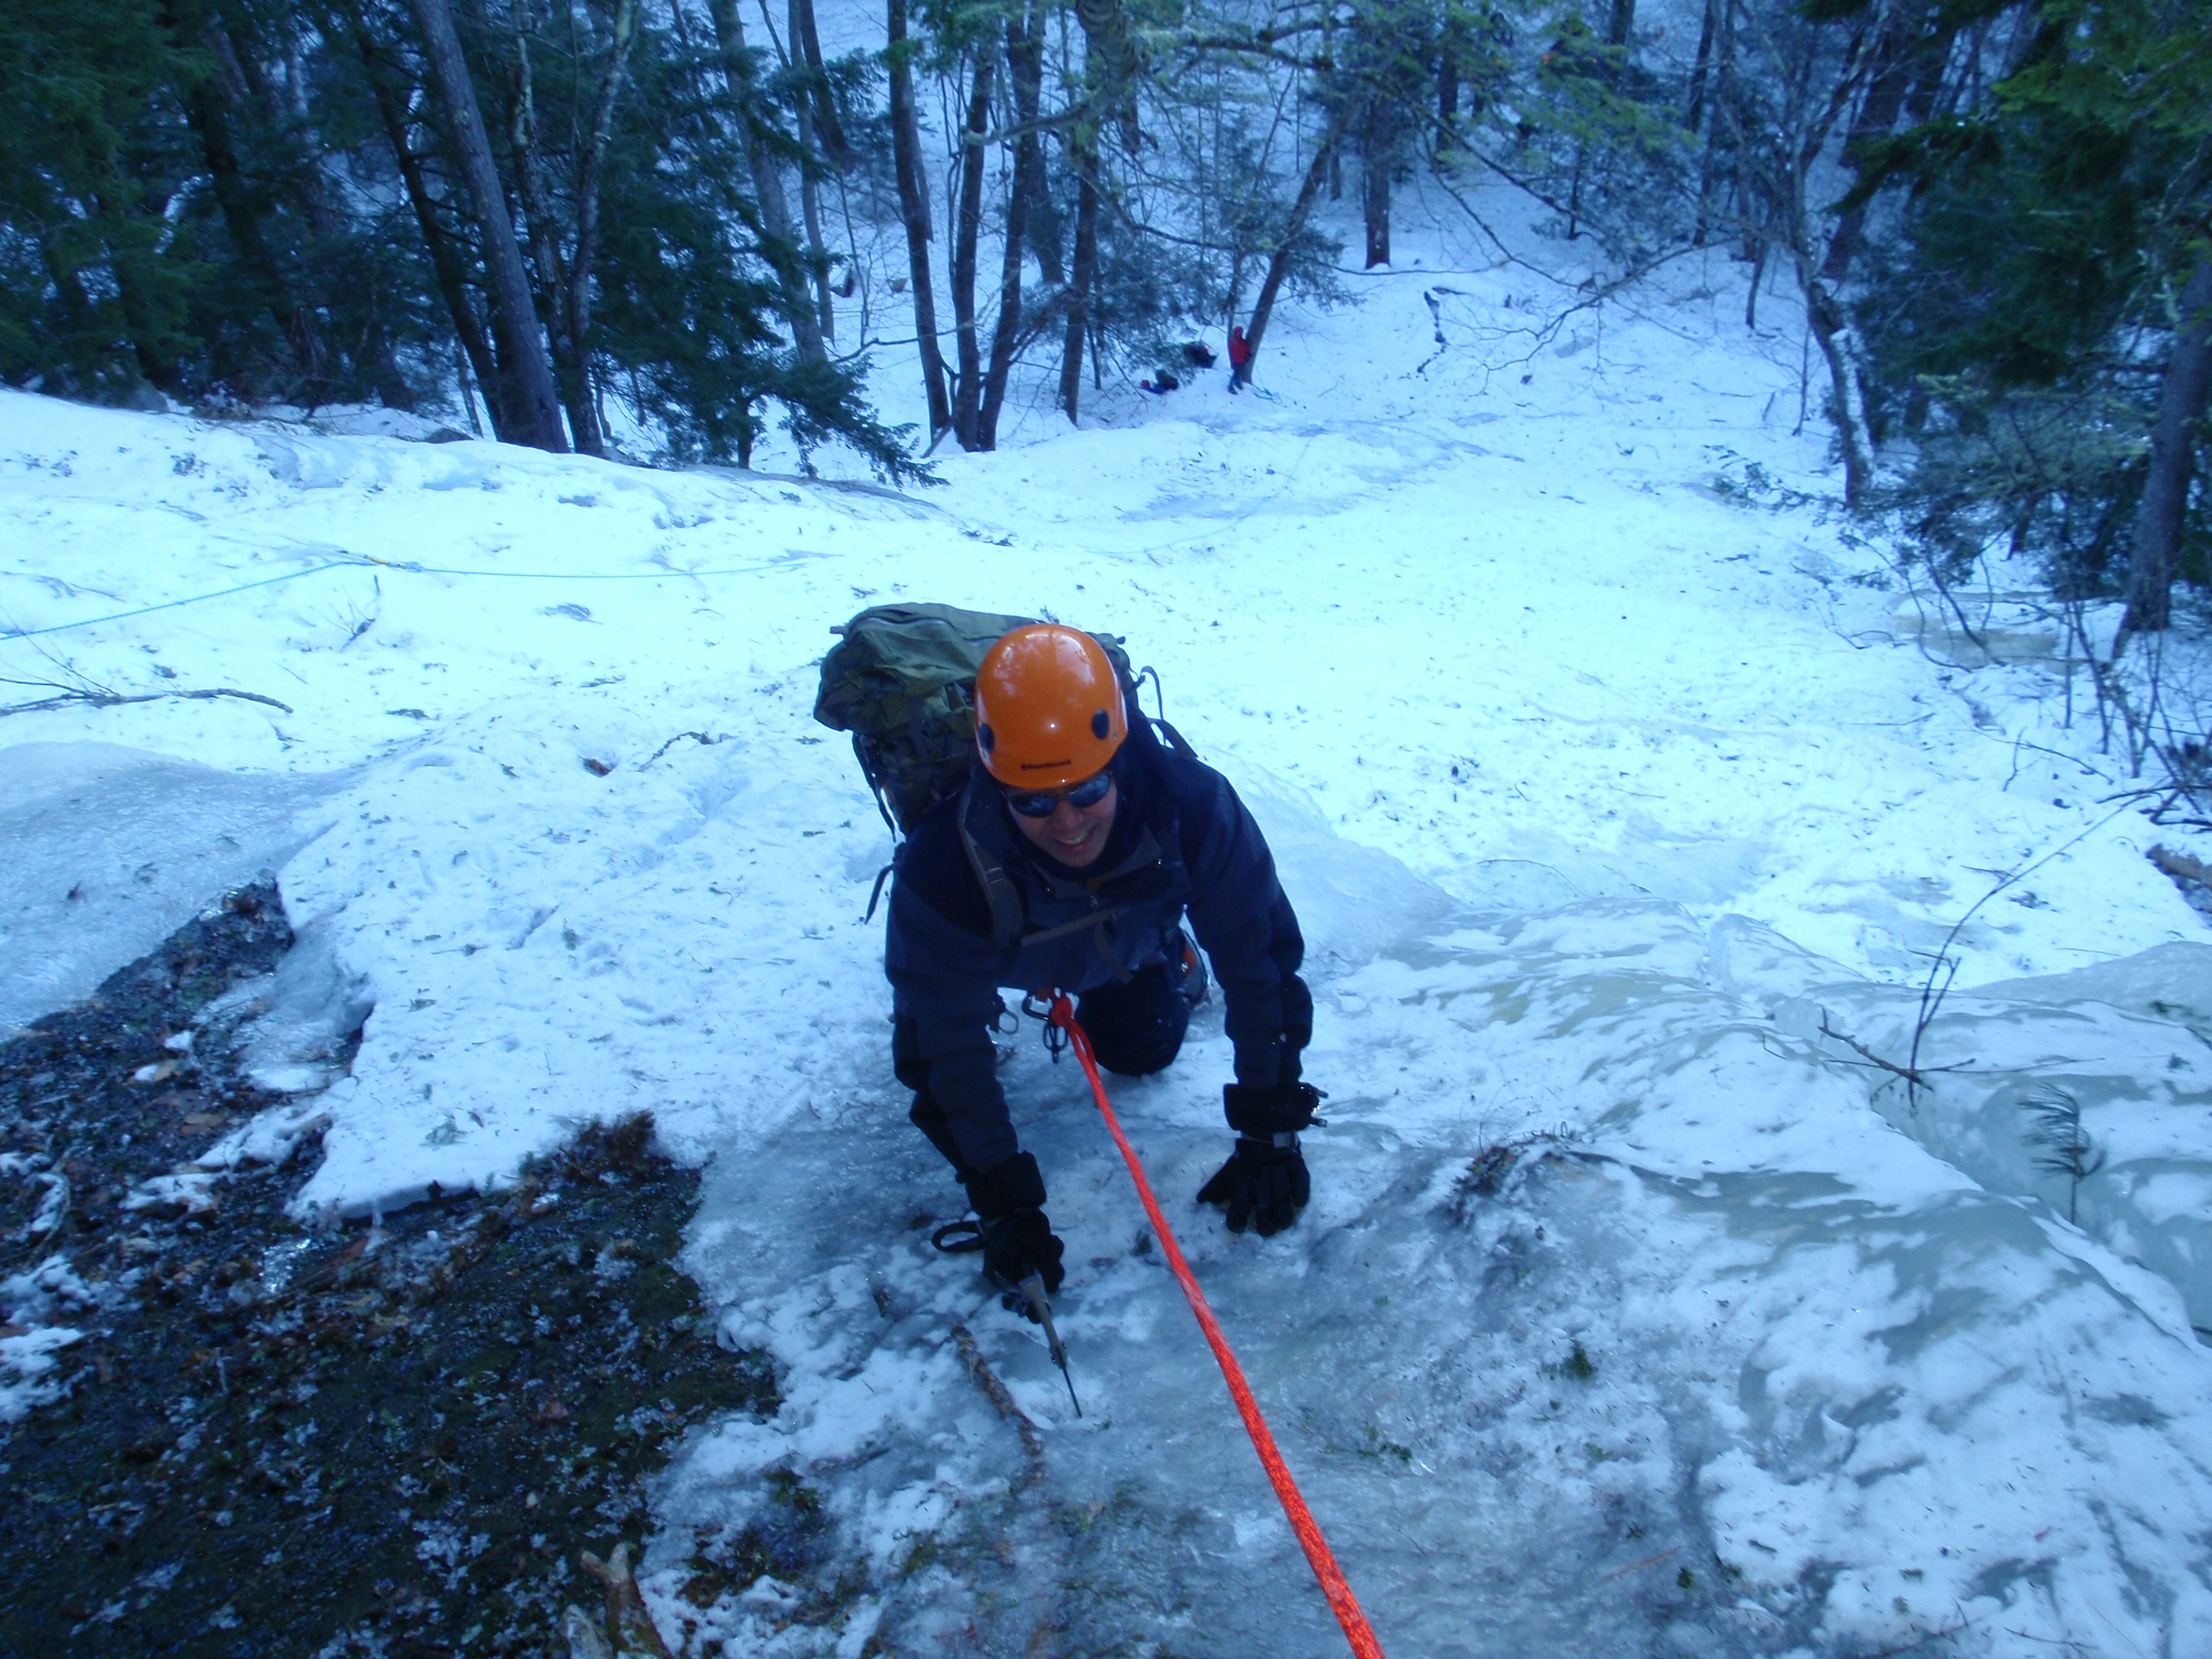 Justin finishing the route...